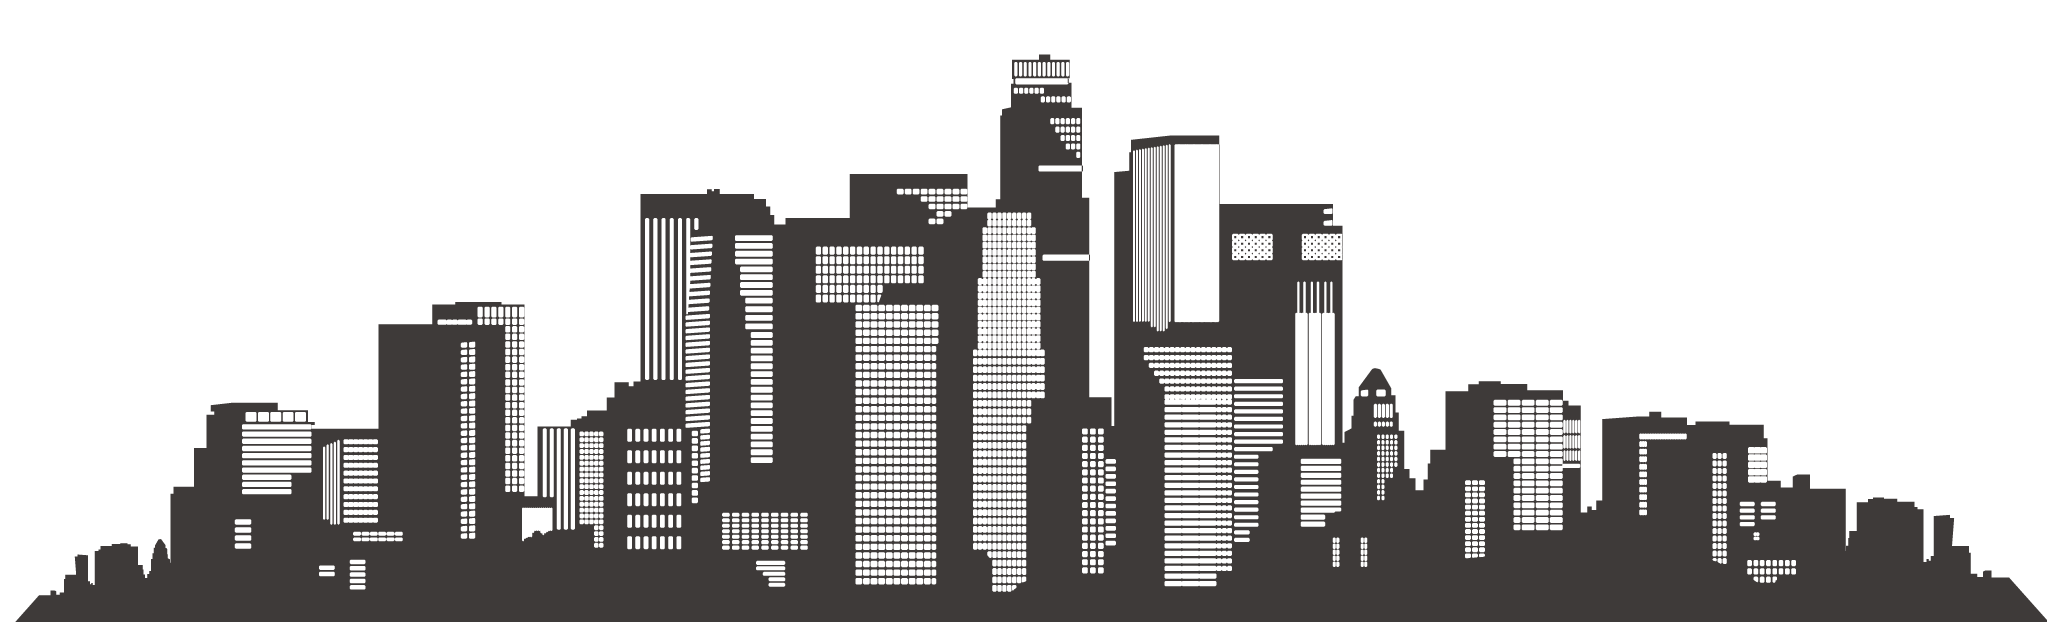 transparent stock Png free peoplepng com. Vector architecture.